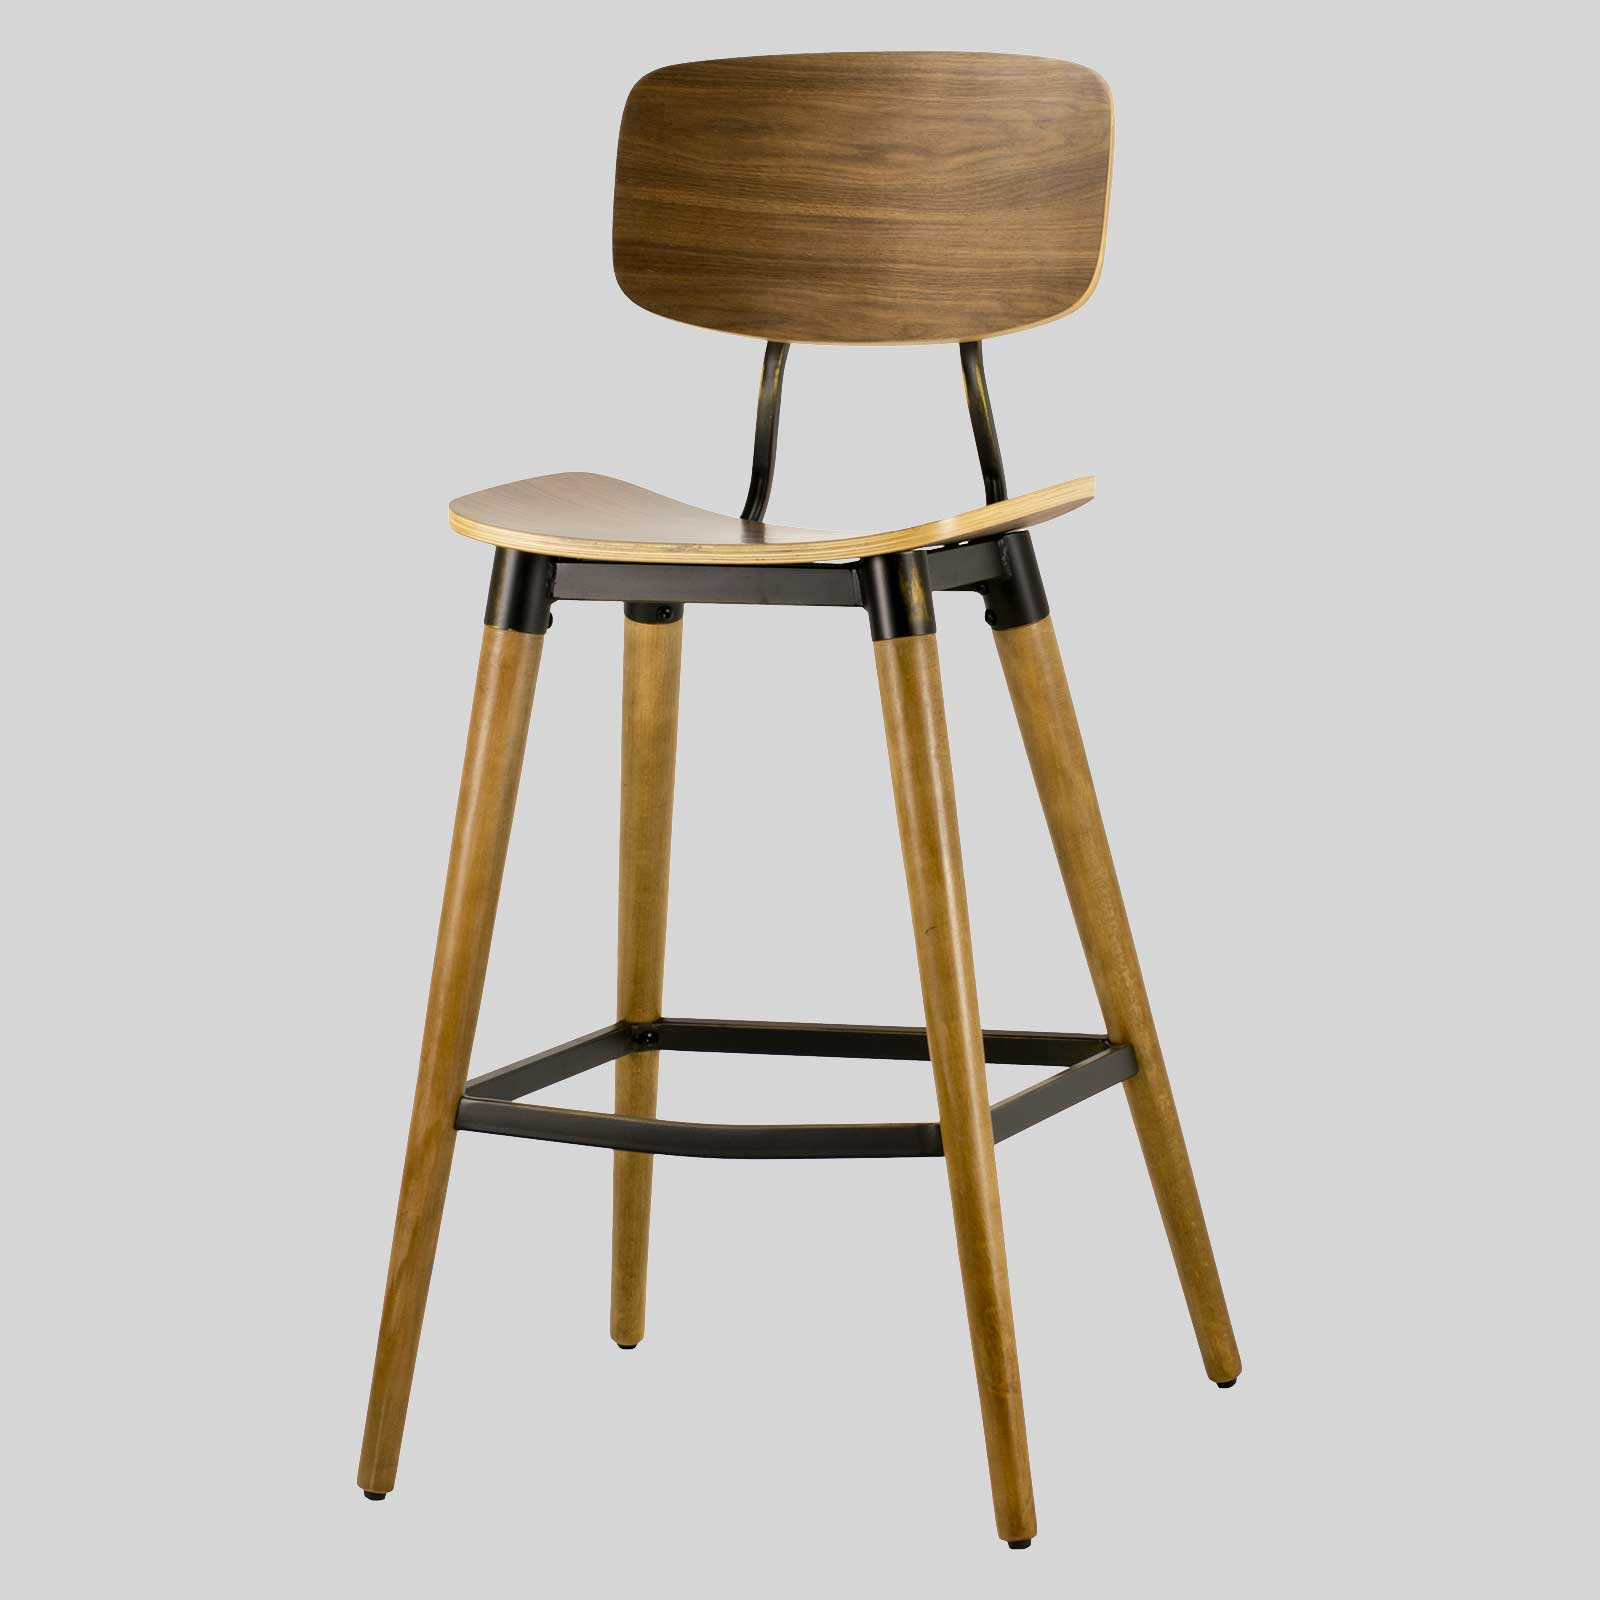 Retro X Barstools for Hotels & Pubs